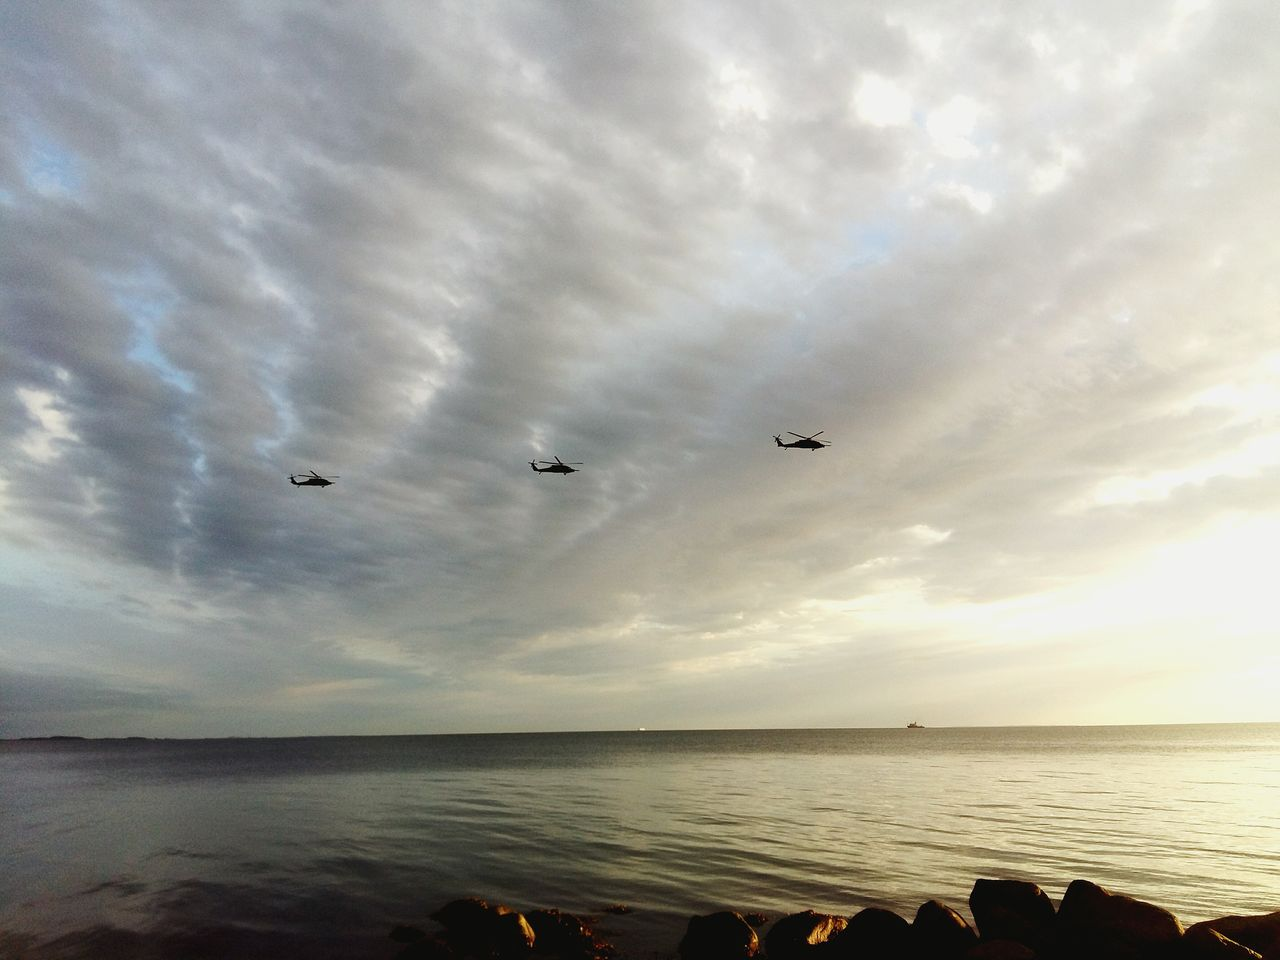 flying, sky, sea, water, cloud - sky, horizon over water, beach, silhouette, airplane, mid-air, nature, outdoors, scenics, no people, bird, beauty in nature, day, animal themes